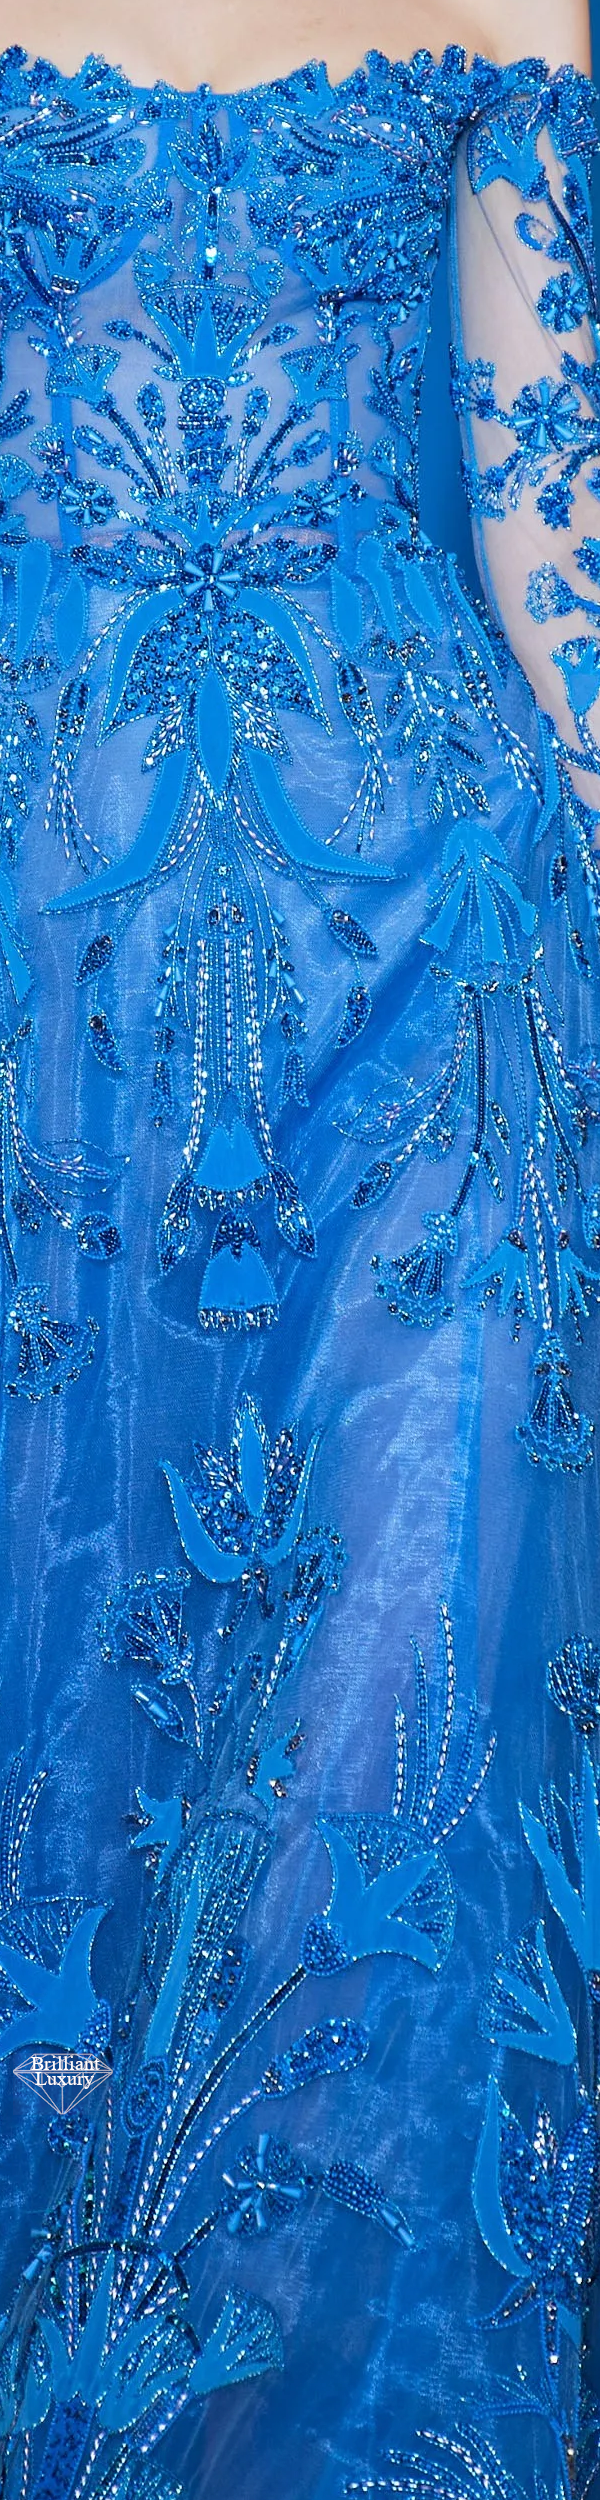 Zuhair Murad Spring 2020 Couture Egyptian Embroidered Royal Blue Gown #fashion